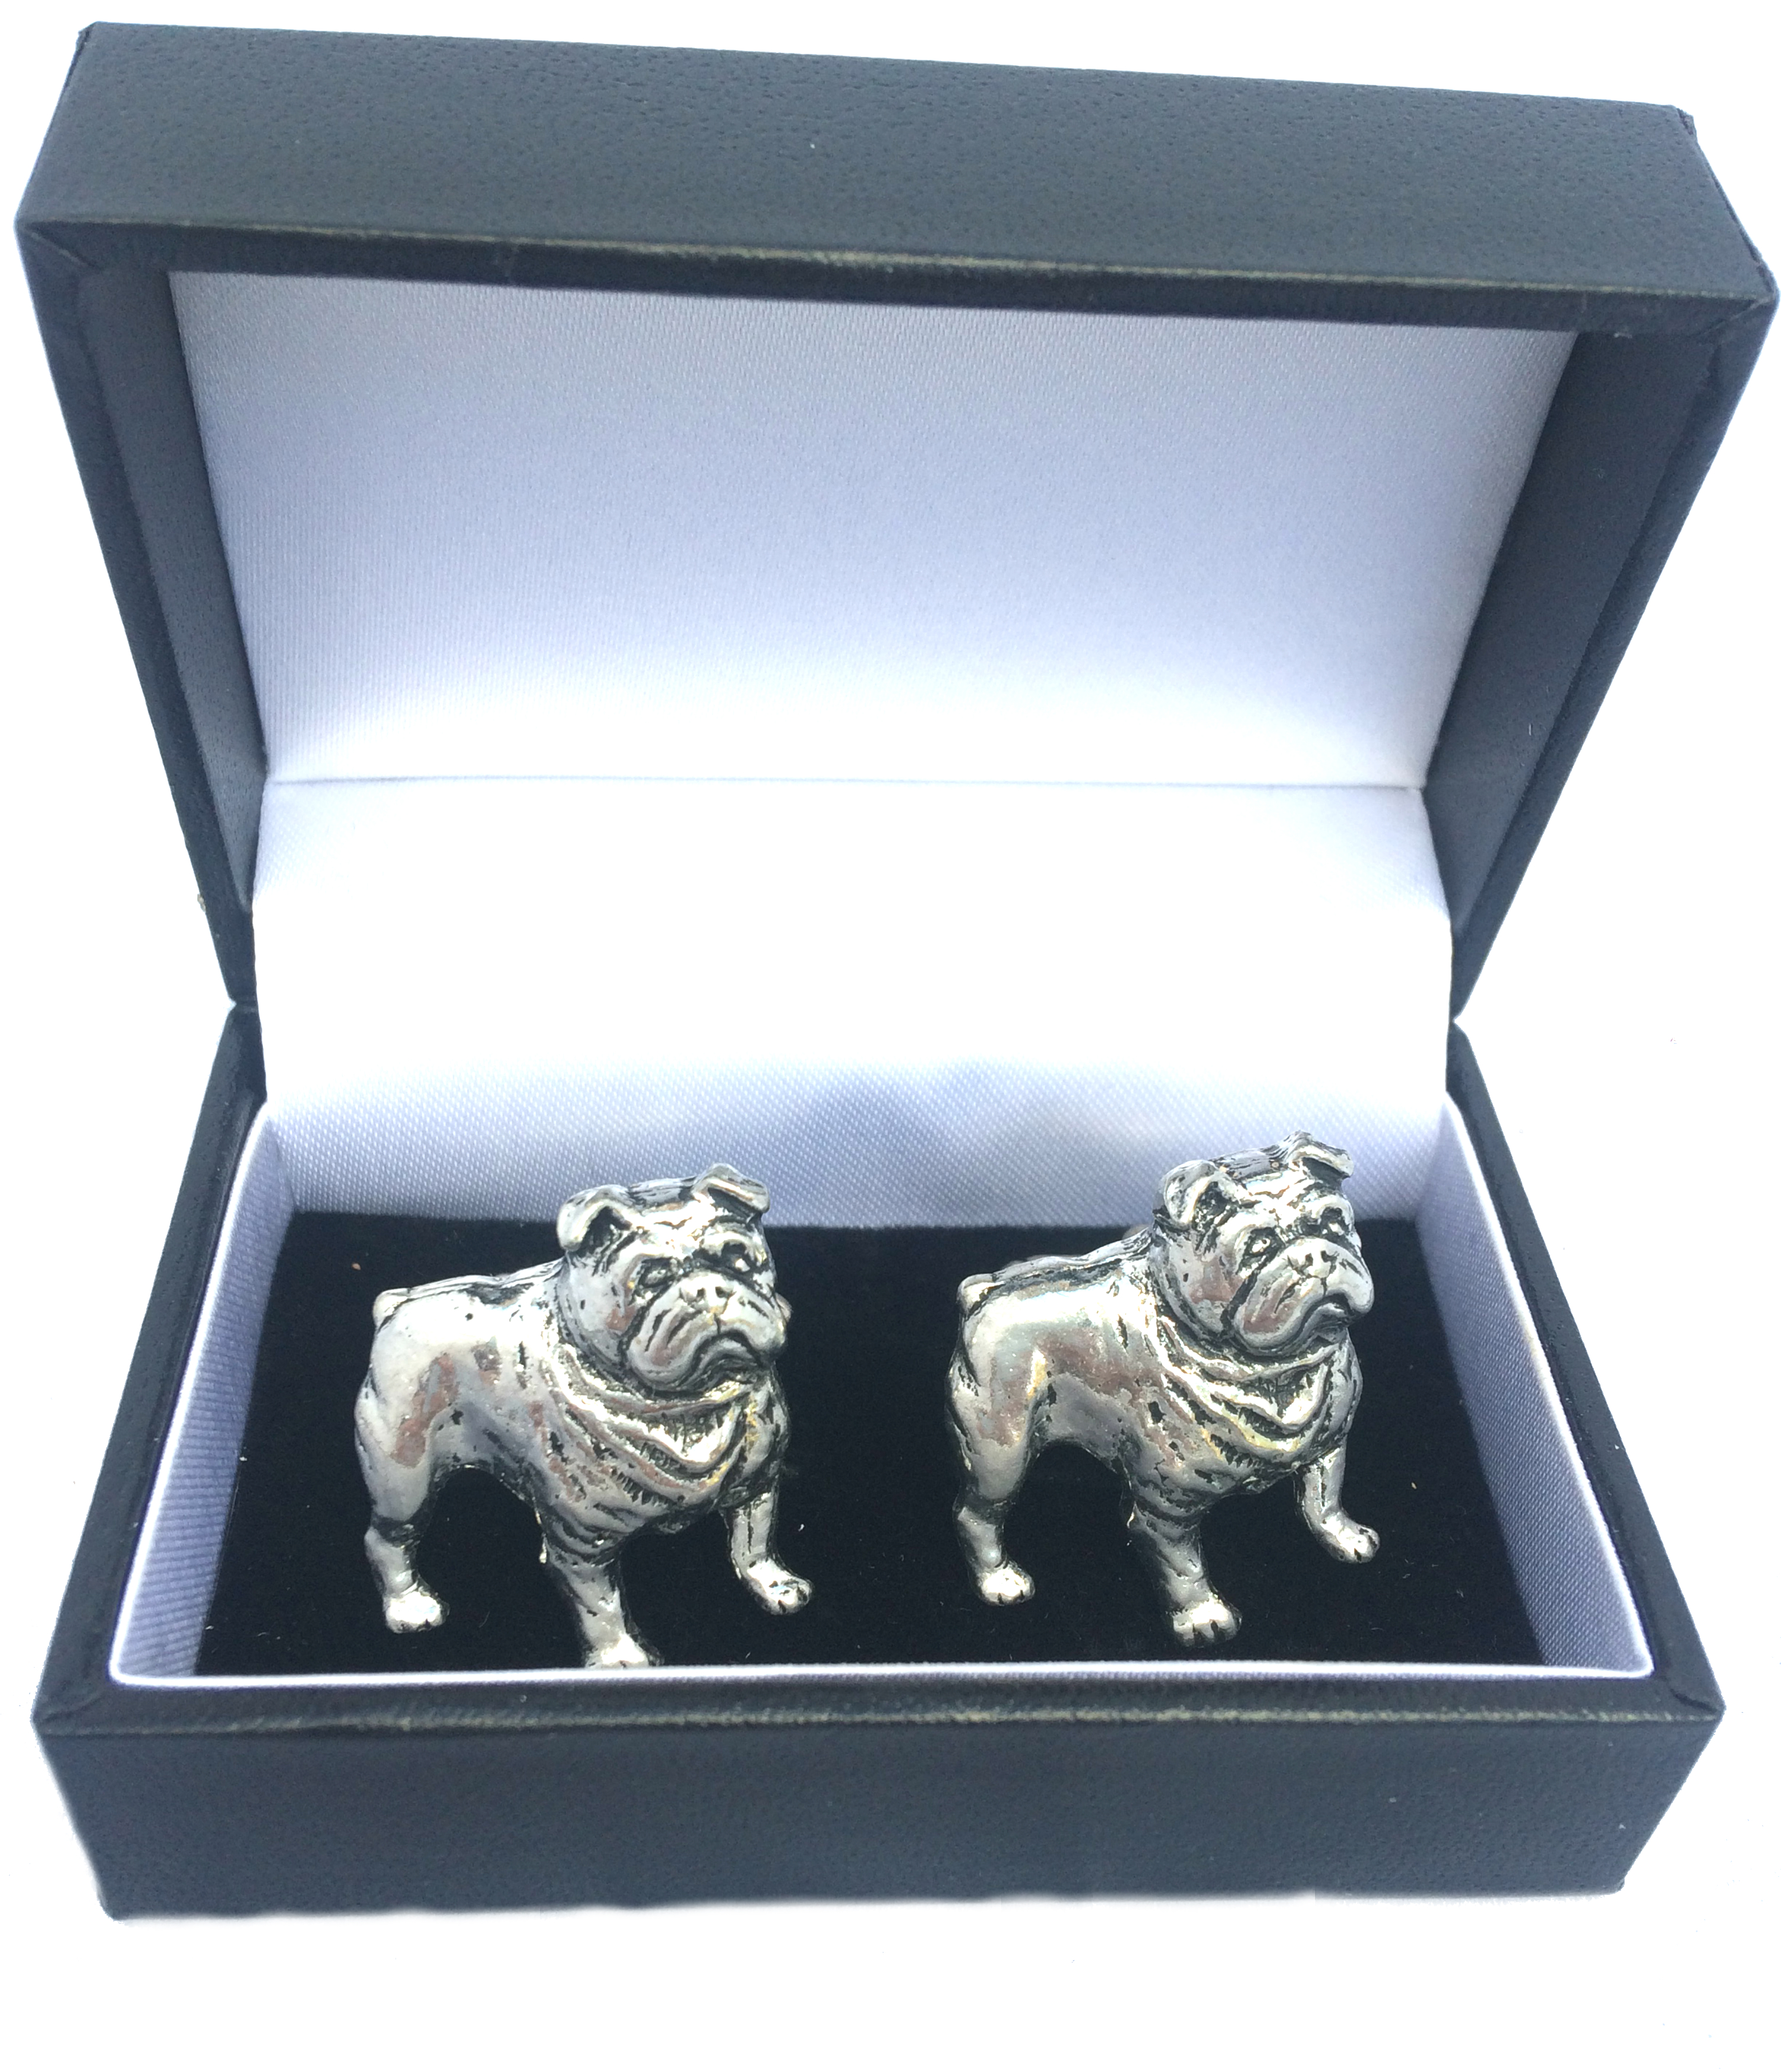 Details about  /Poppy Cufflinks handmade in England from Fine English Pewter.